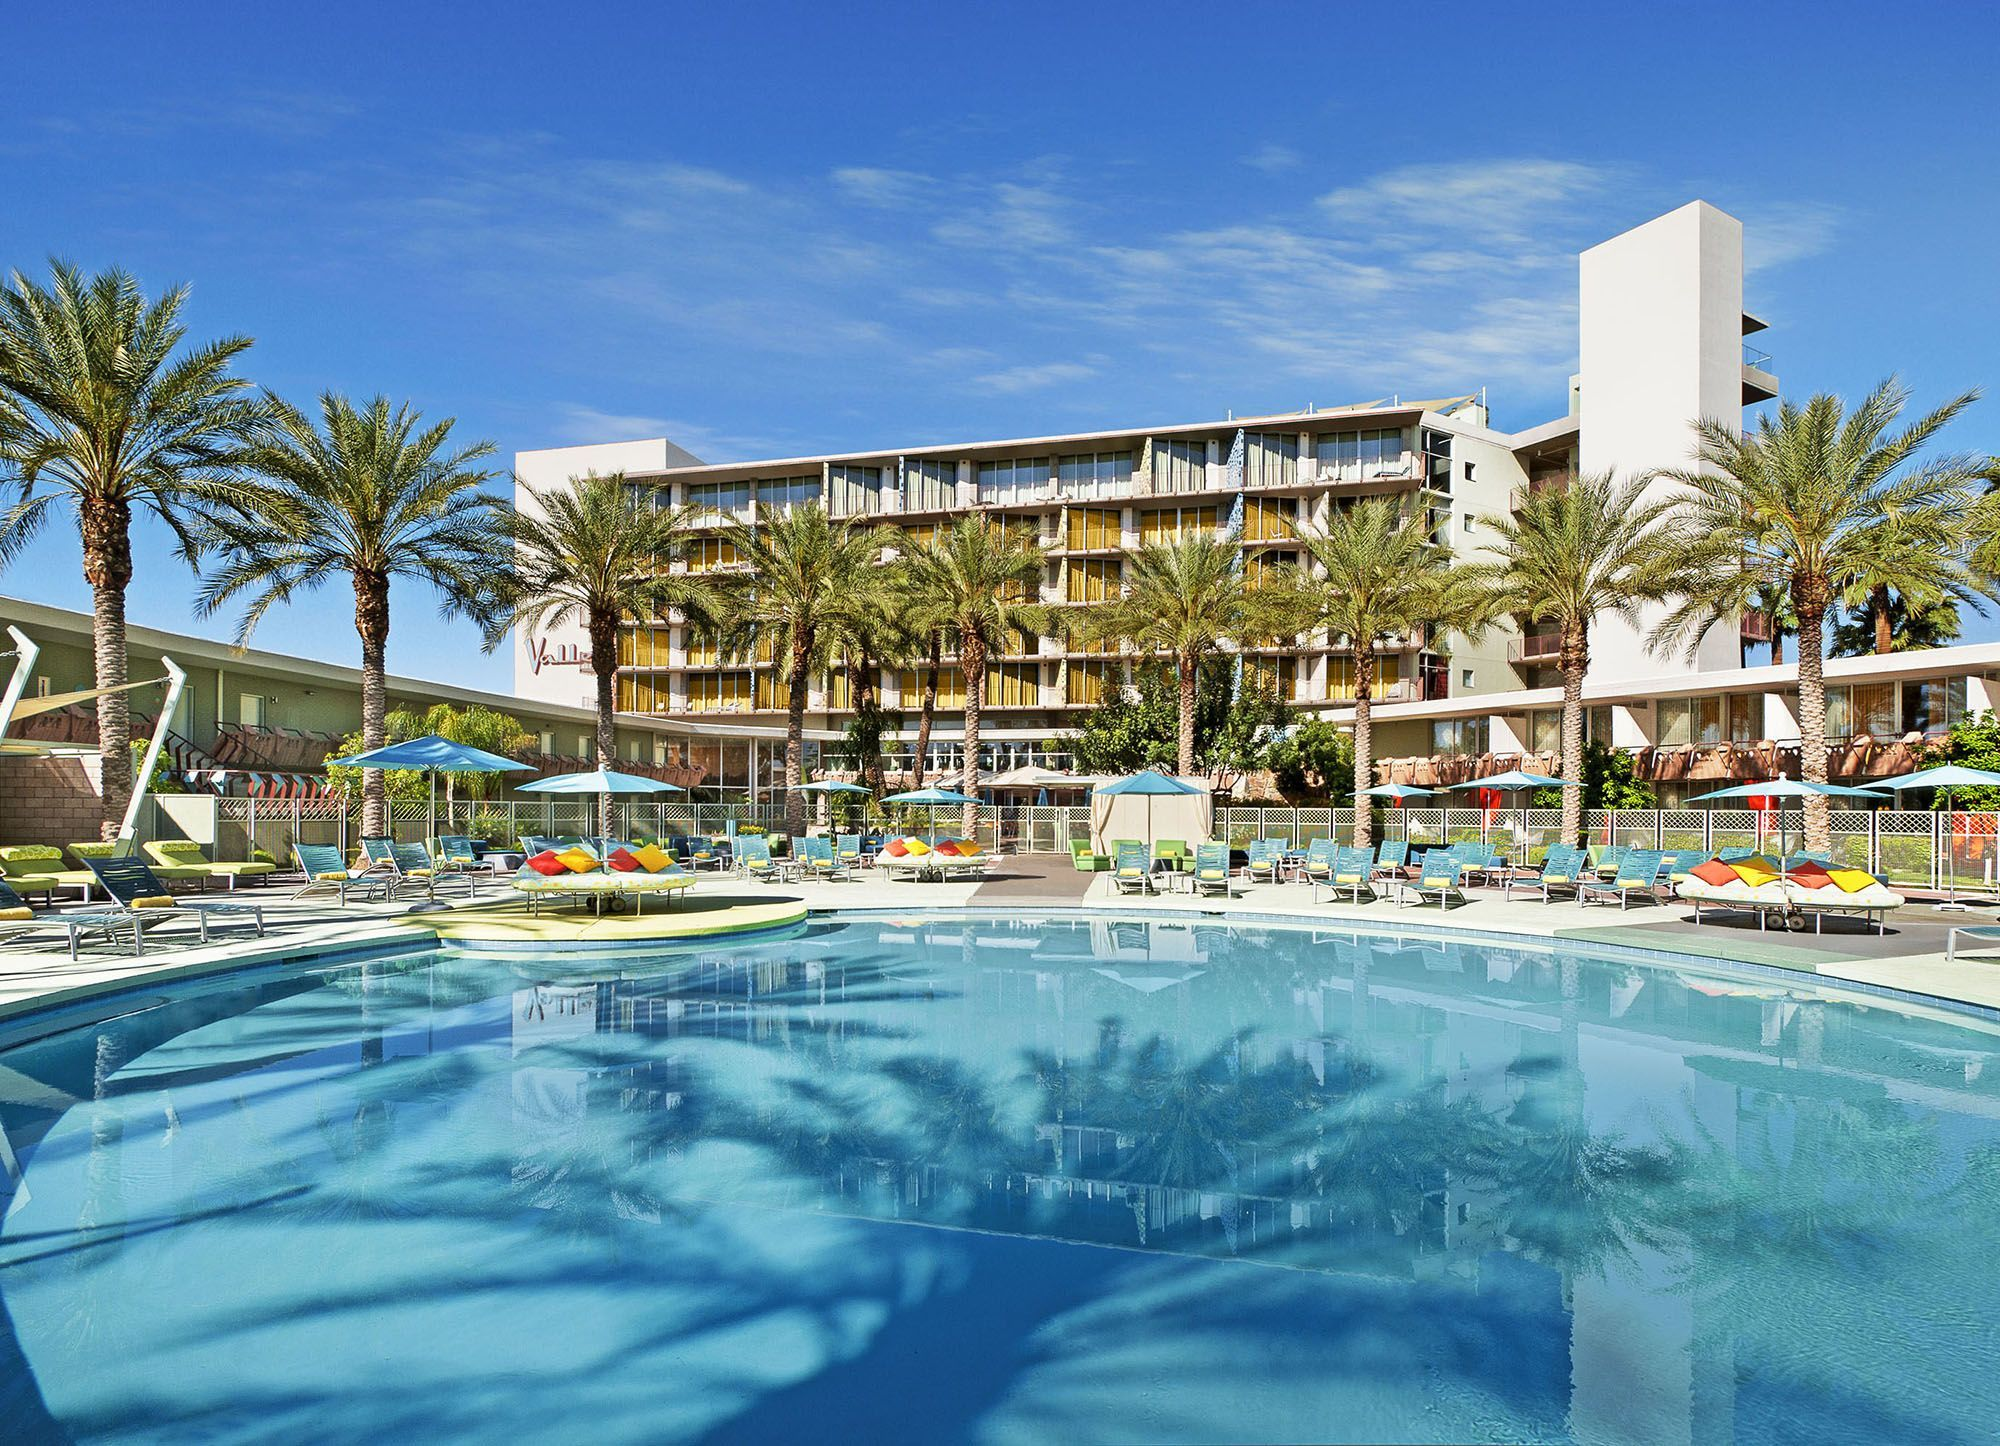 Hotel Valley Ho |  Deal: Rates start at $189 a night. Want to stay the entire long weekend? Check out the third night free special.  Activities: Pool party central with DJs, live music and drink specials.  Details:480-376-2600, hotelvalleyho.com.